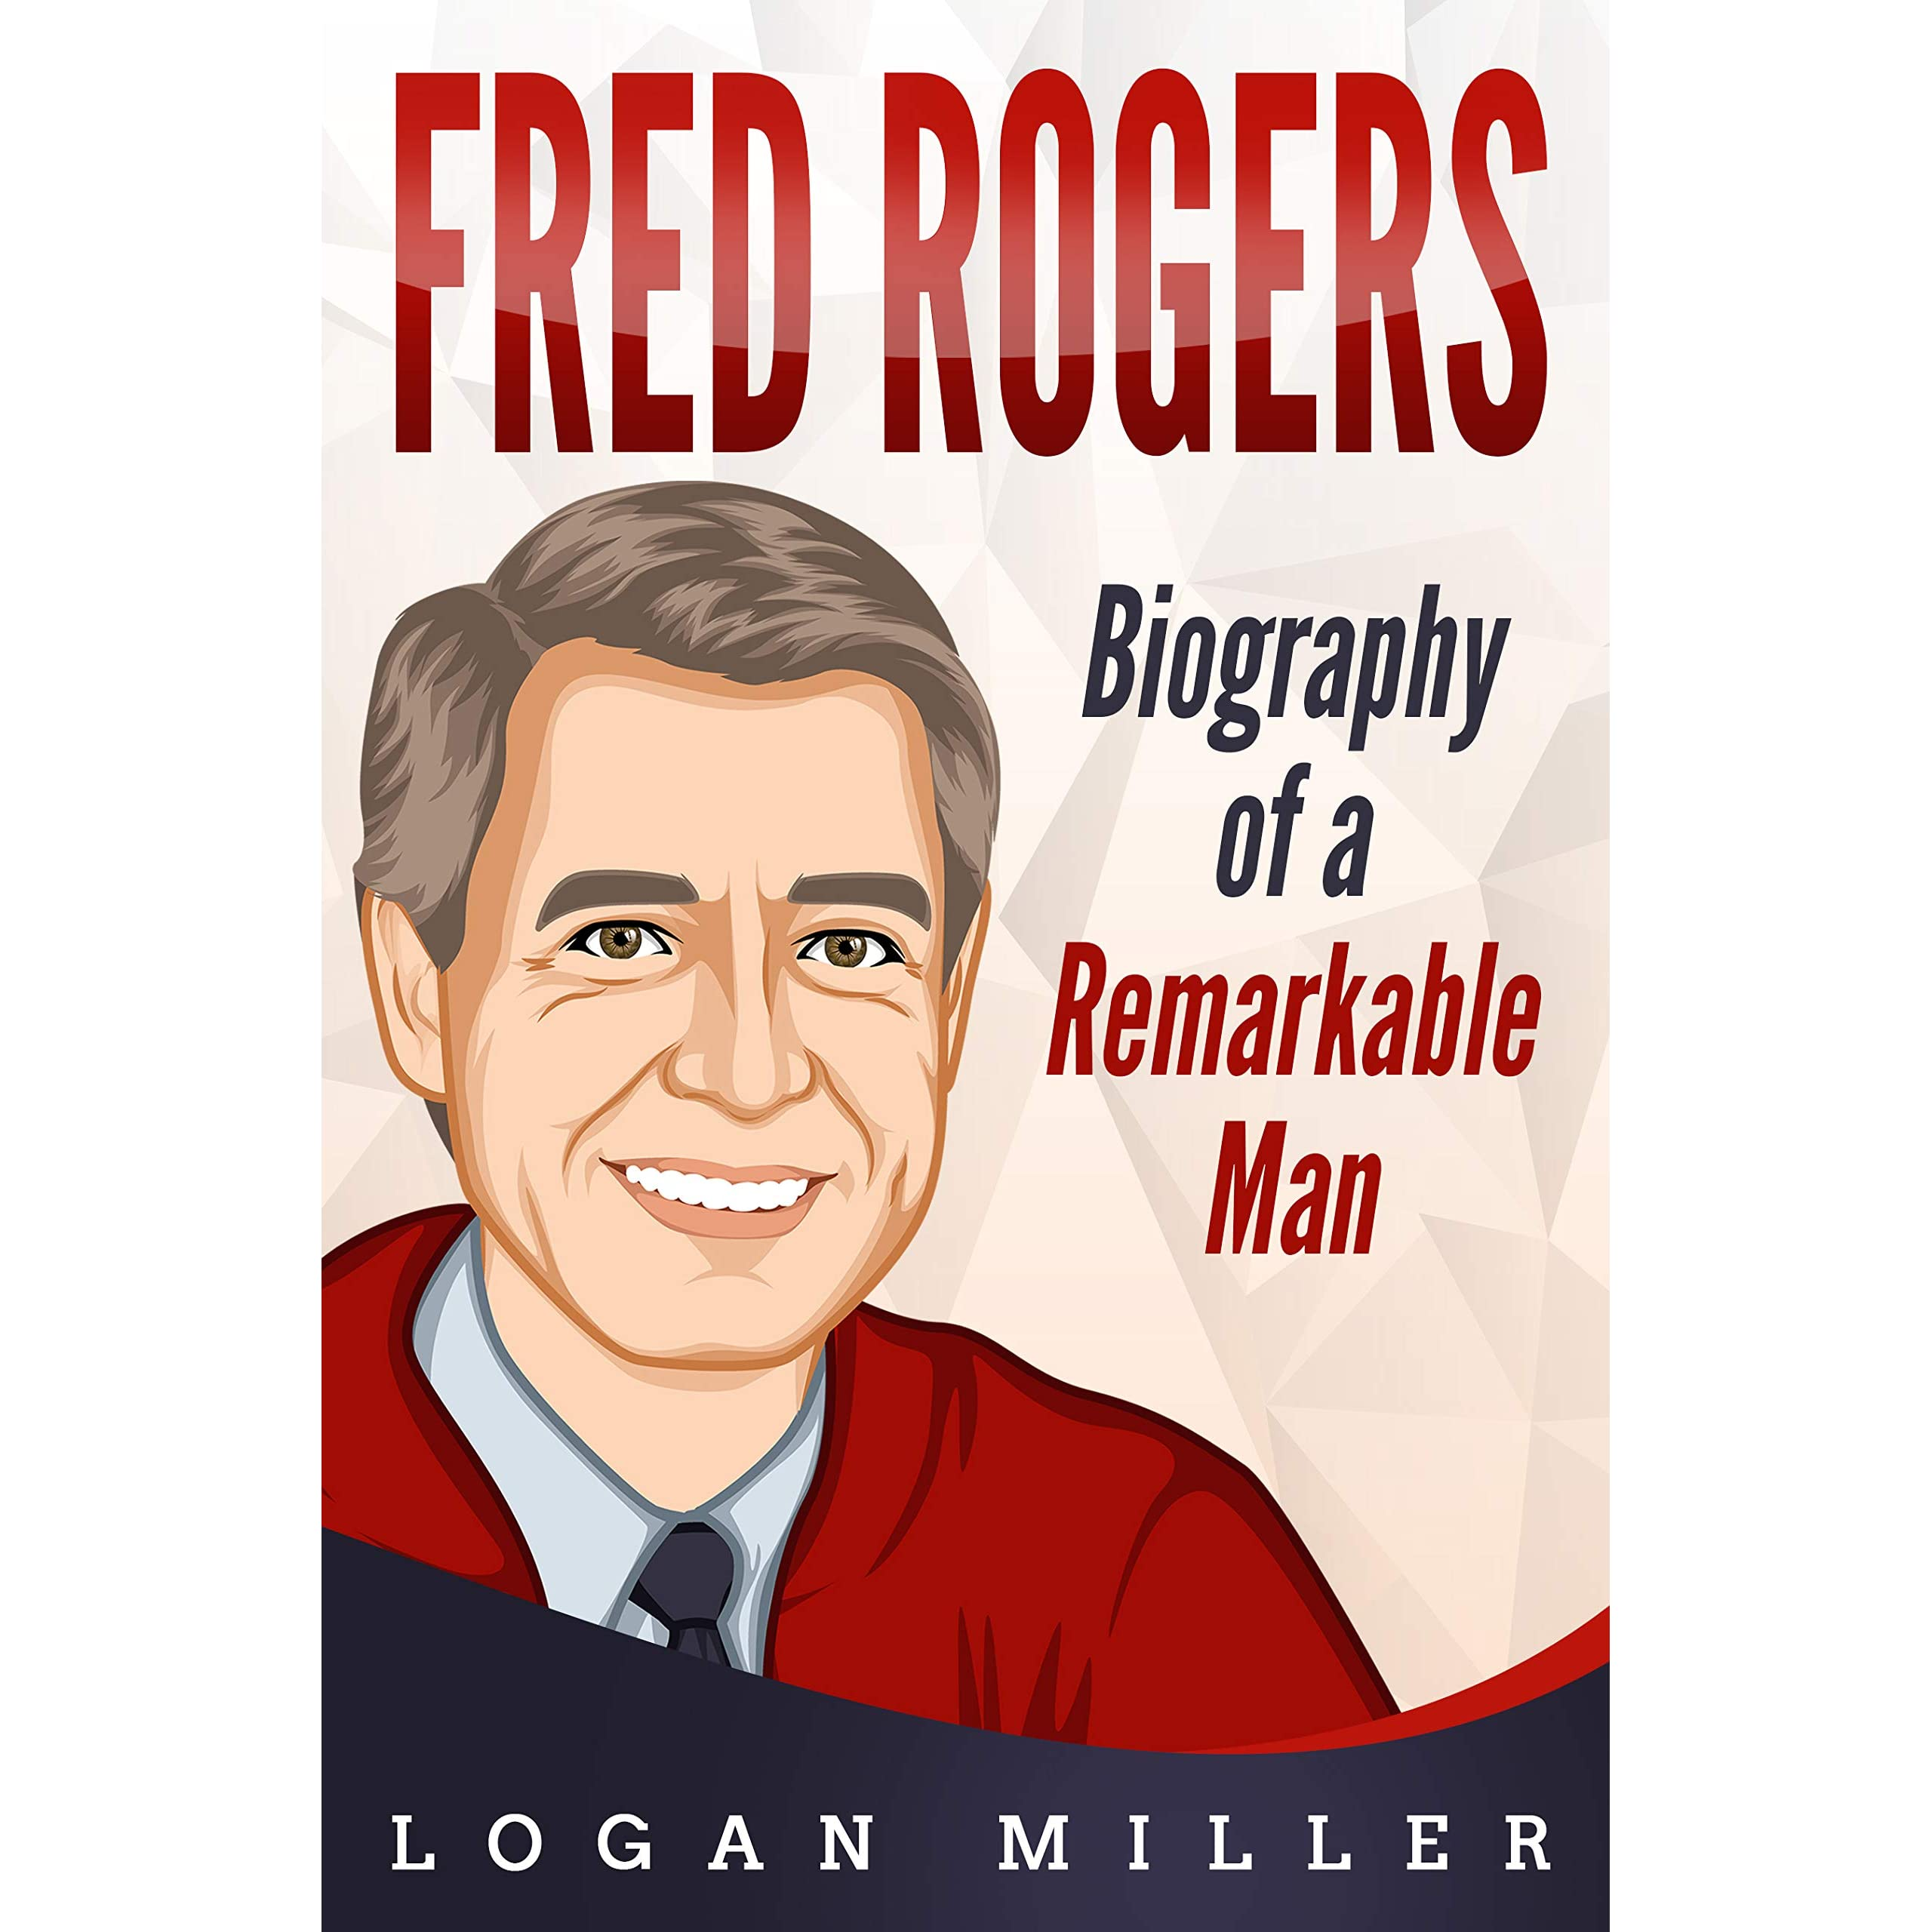 Fred Rogers Biography Of A Remarkable Man By Logan Miller